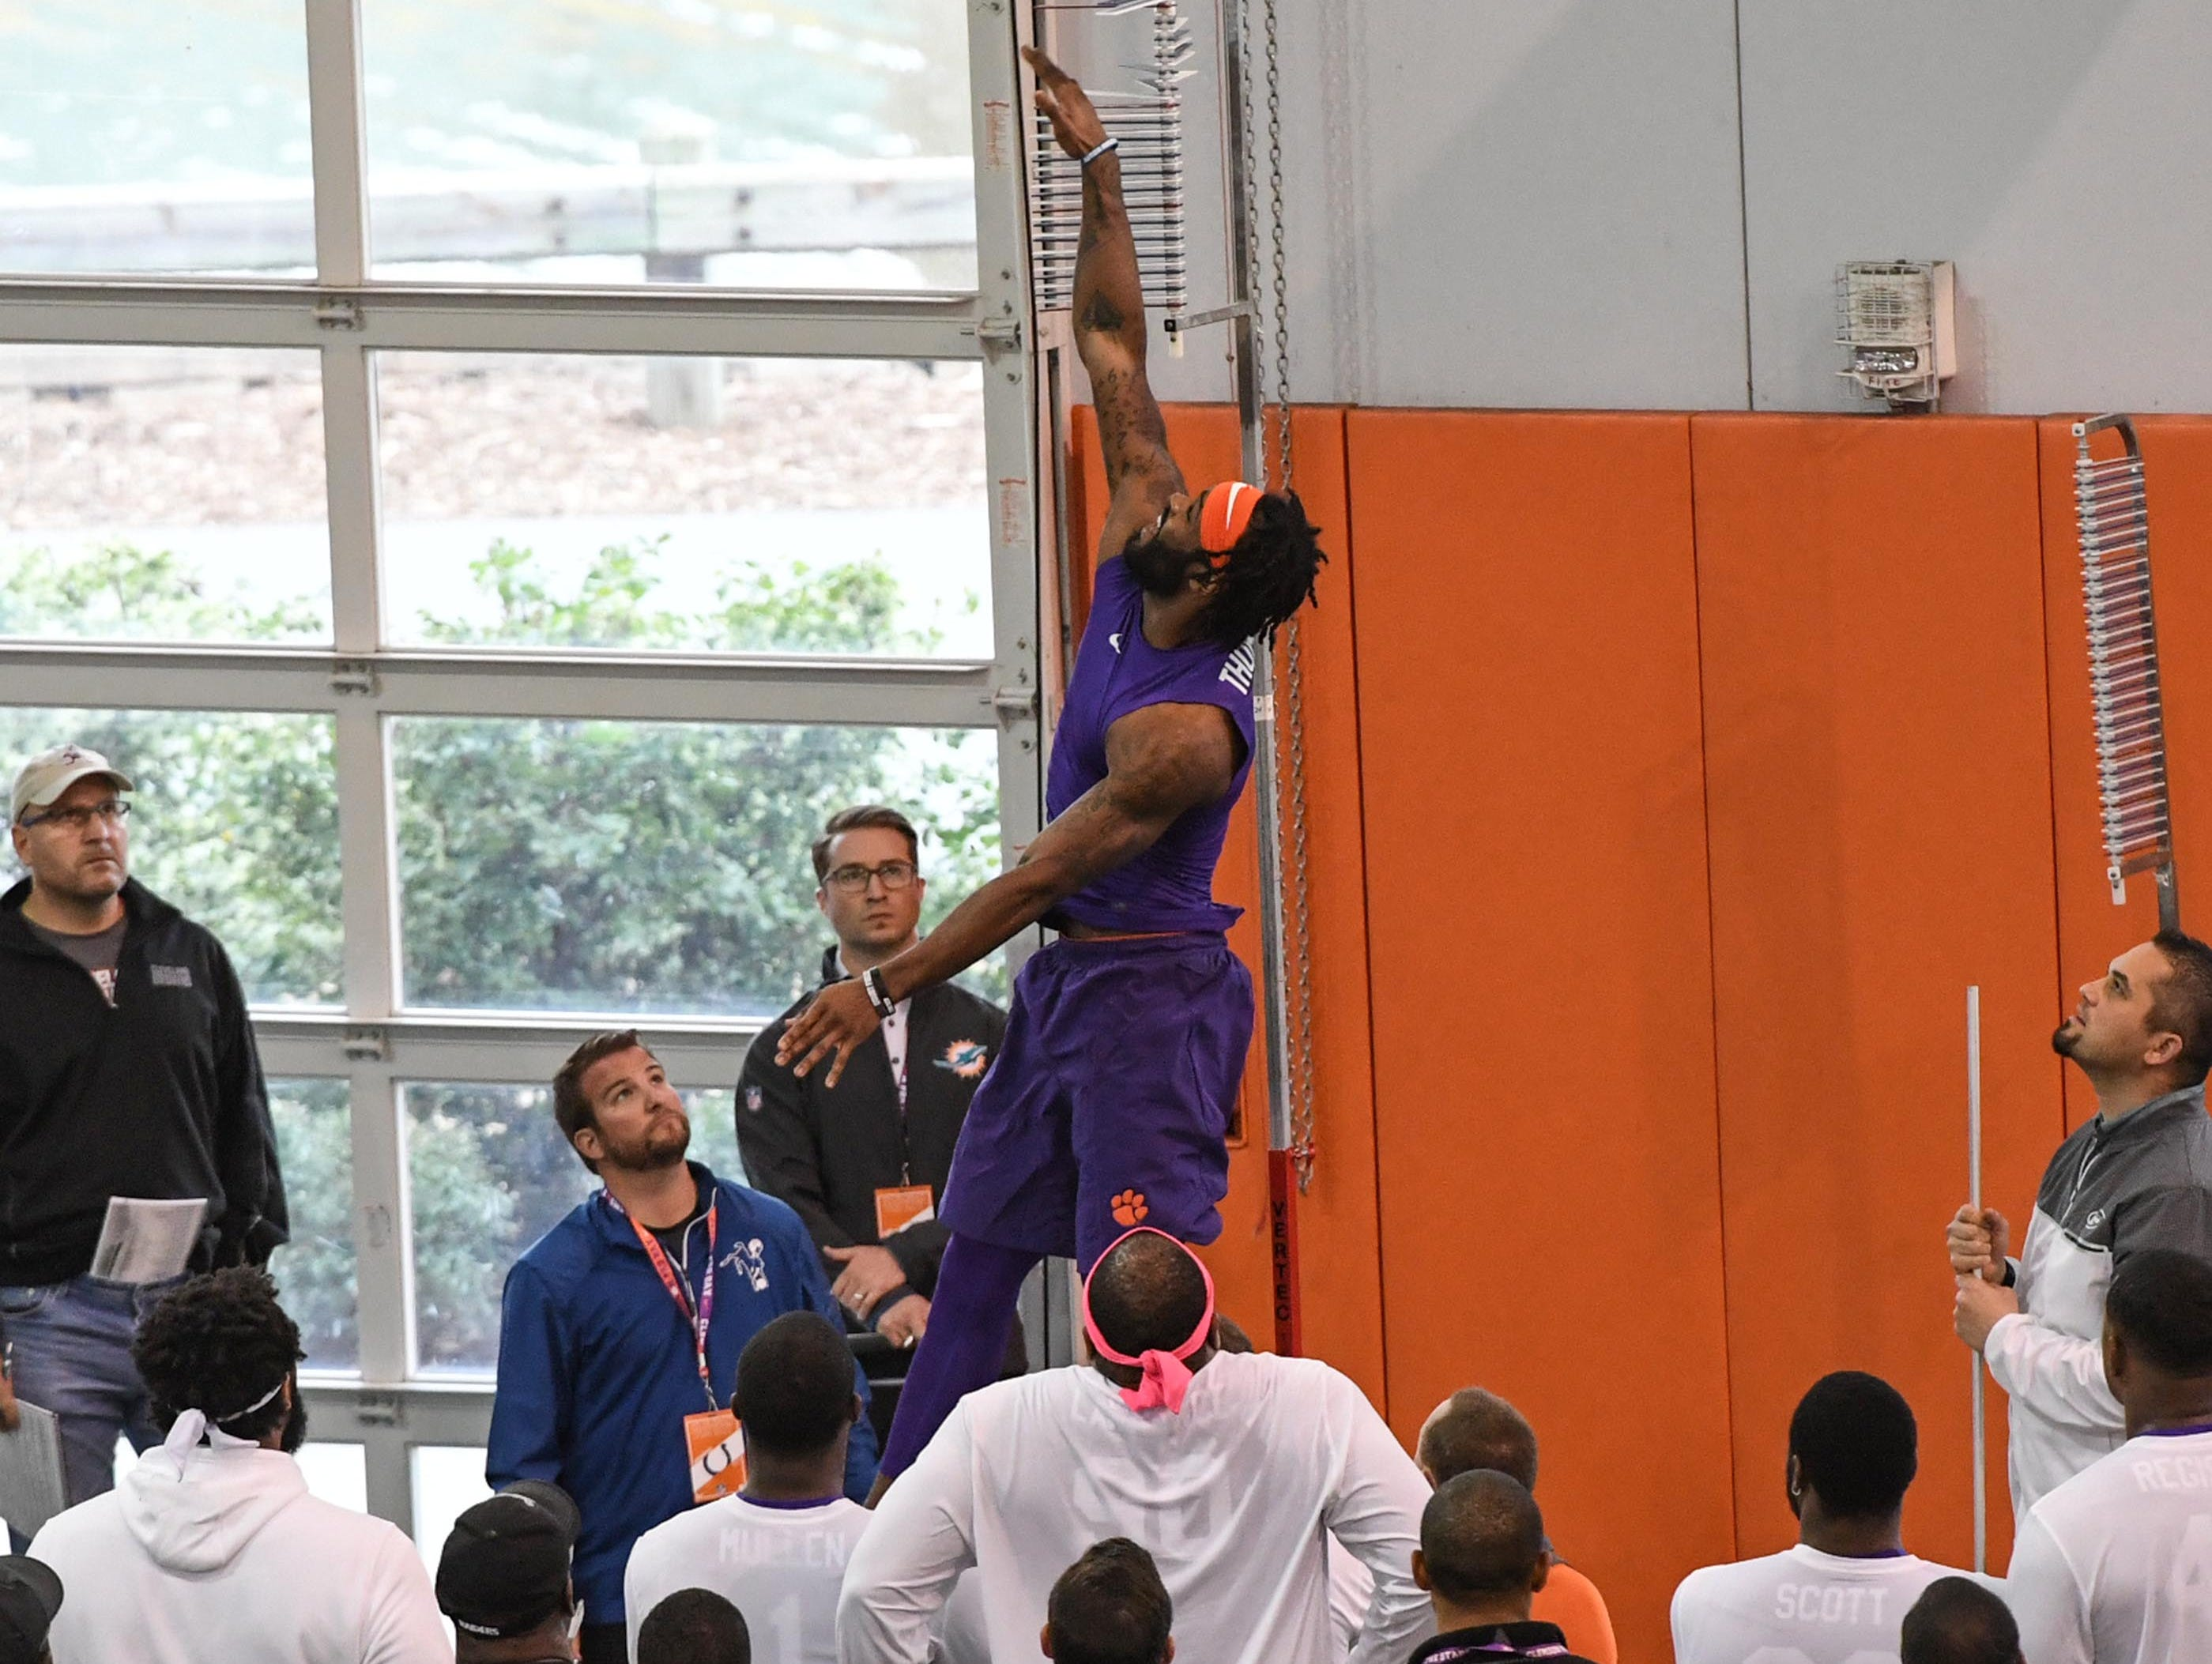 Wide receiver Trevion Thompson is tested for vertical jump during Clemson pro day at the Poe Indoor Facility in Clemson Thursday, March 14, 2019.